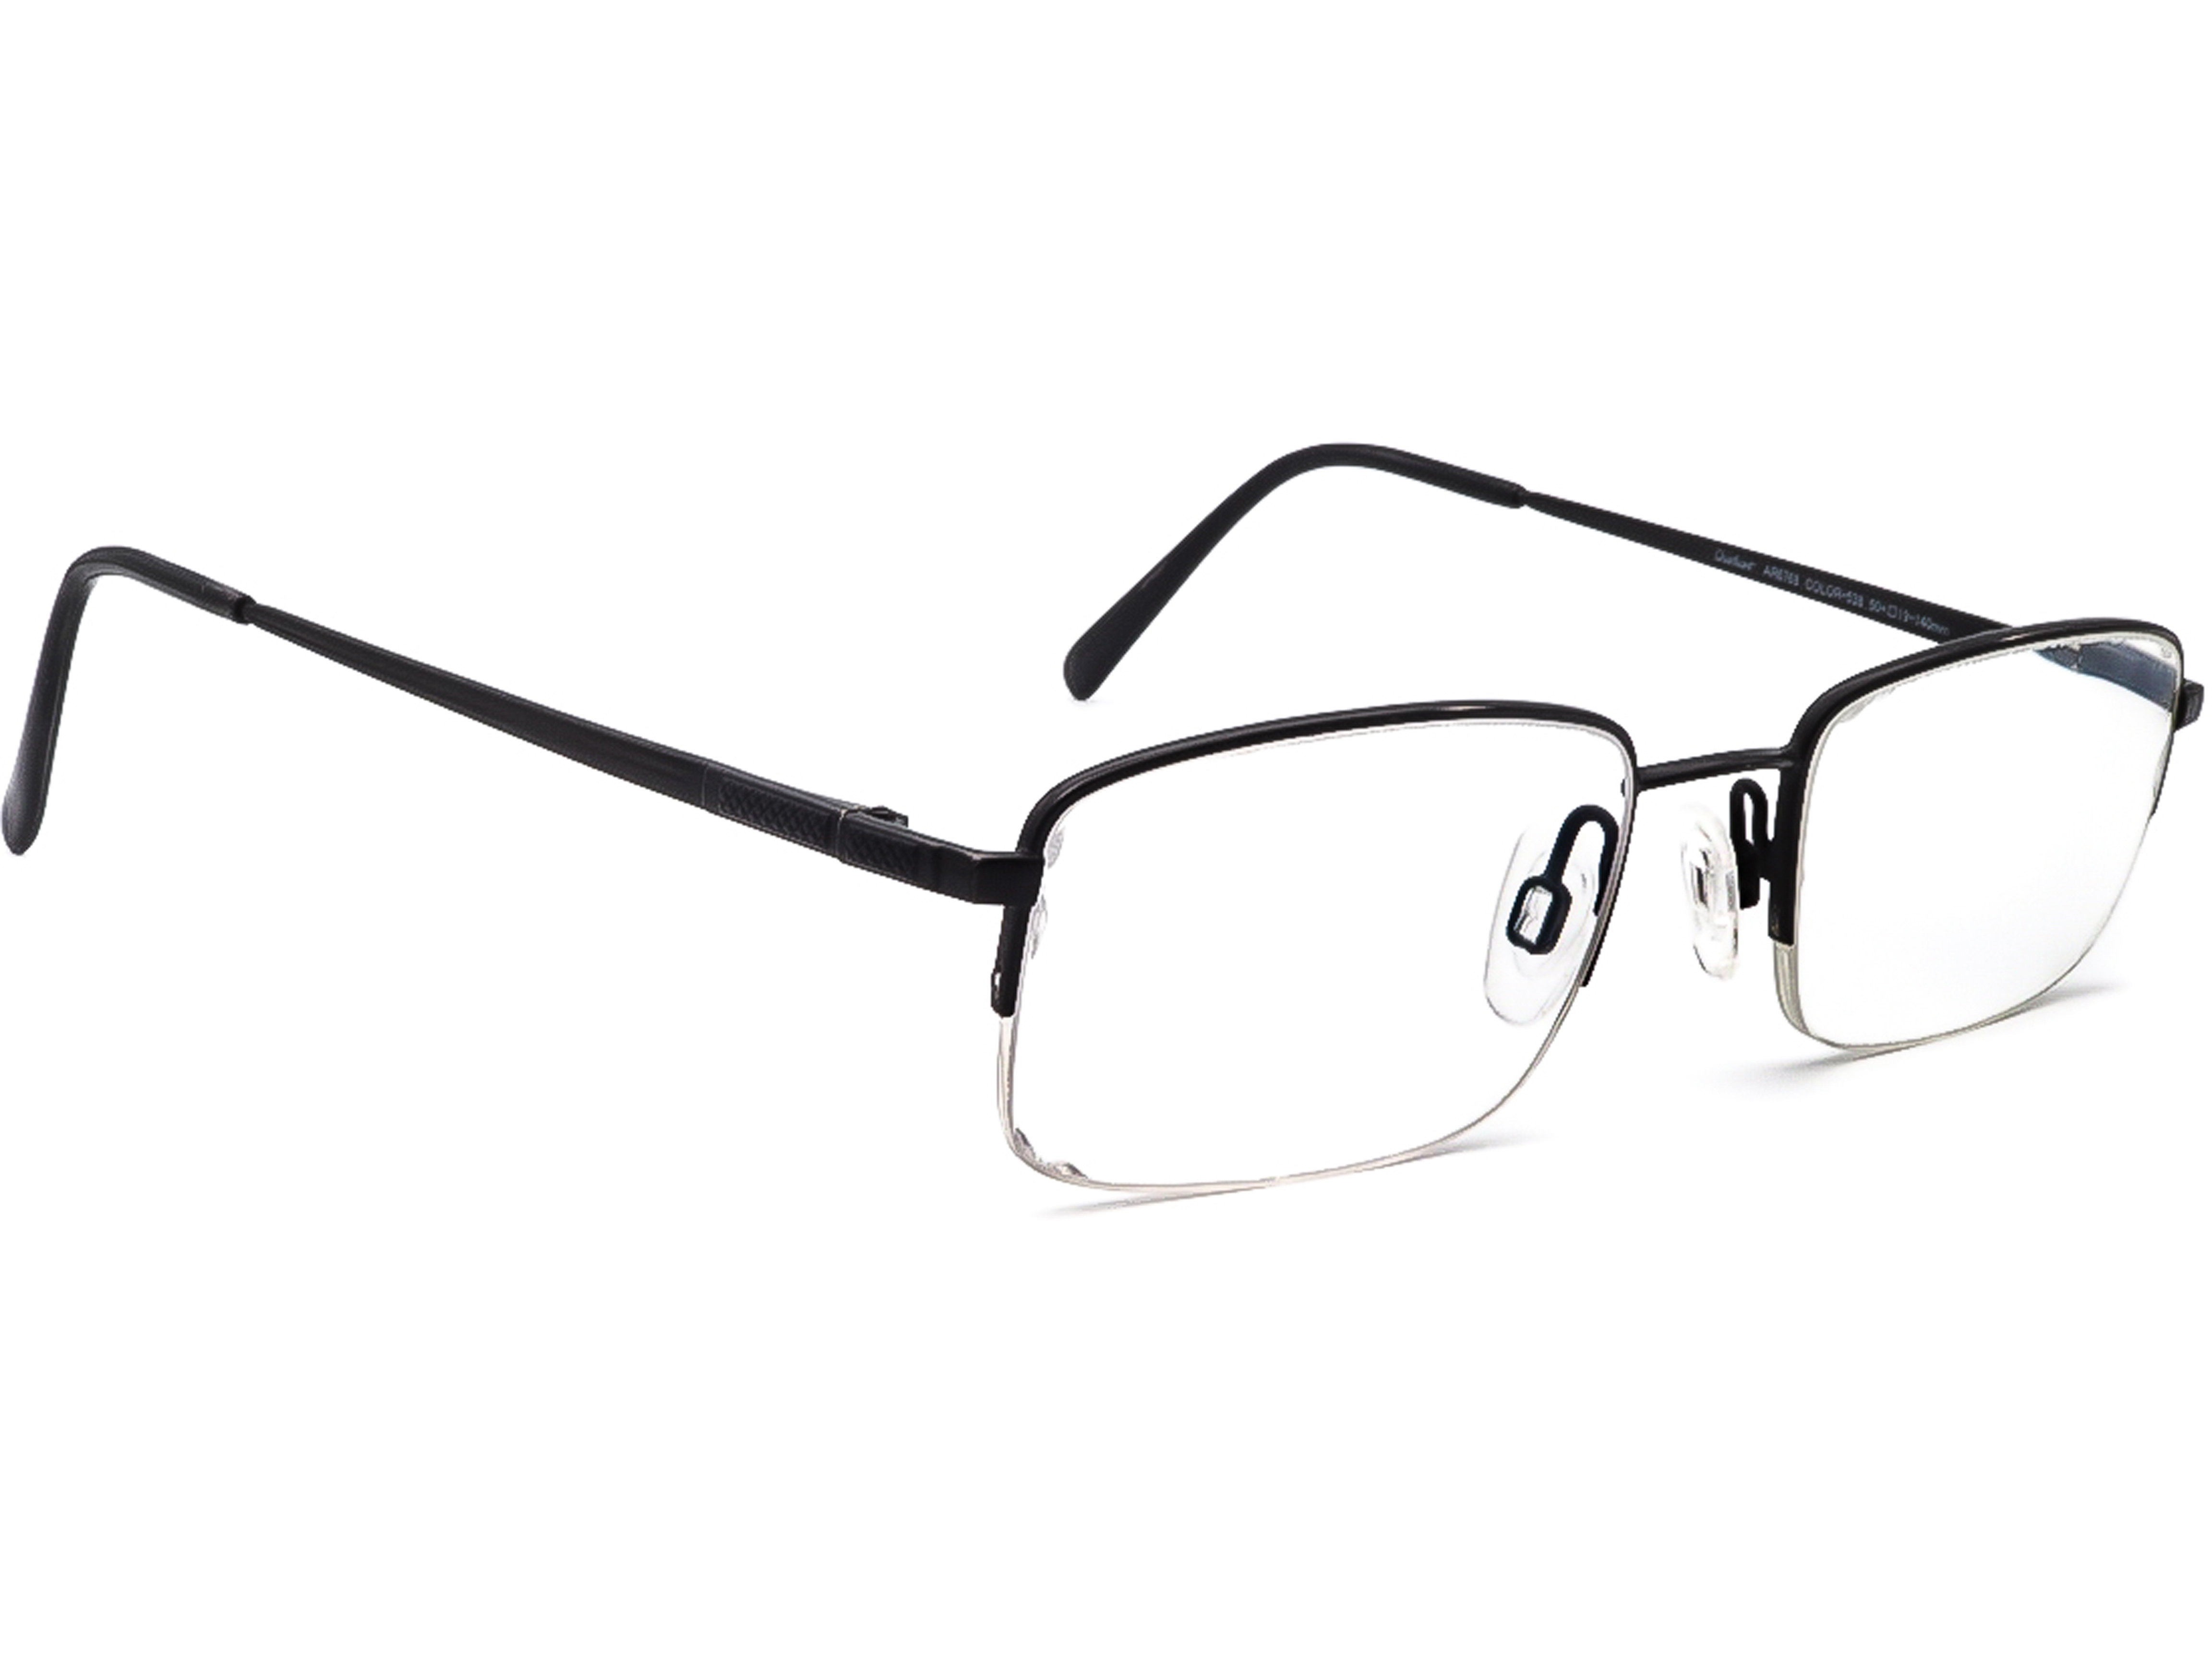 Charmant AR6768 Color-538 ARISTAR Eyeglasses